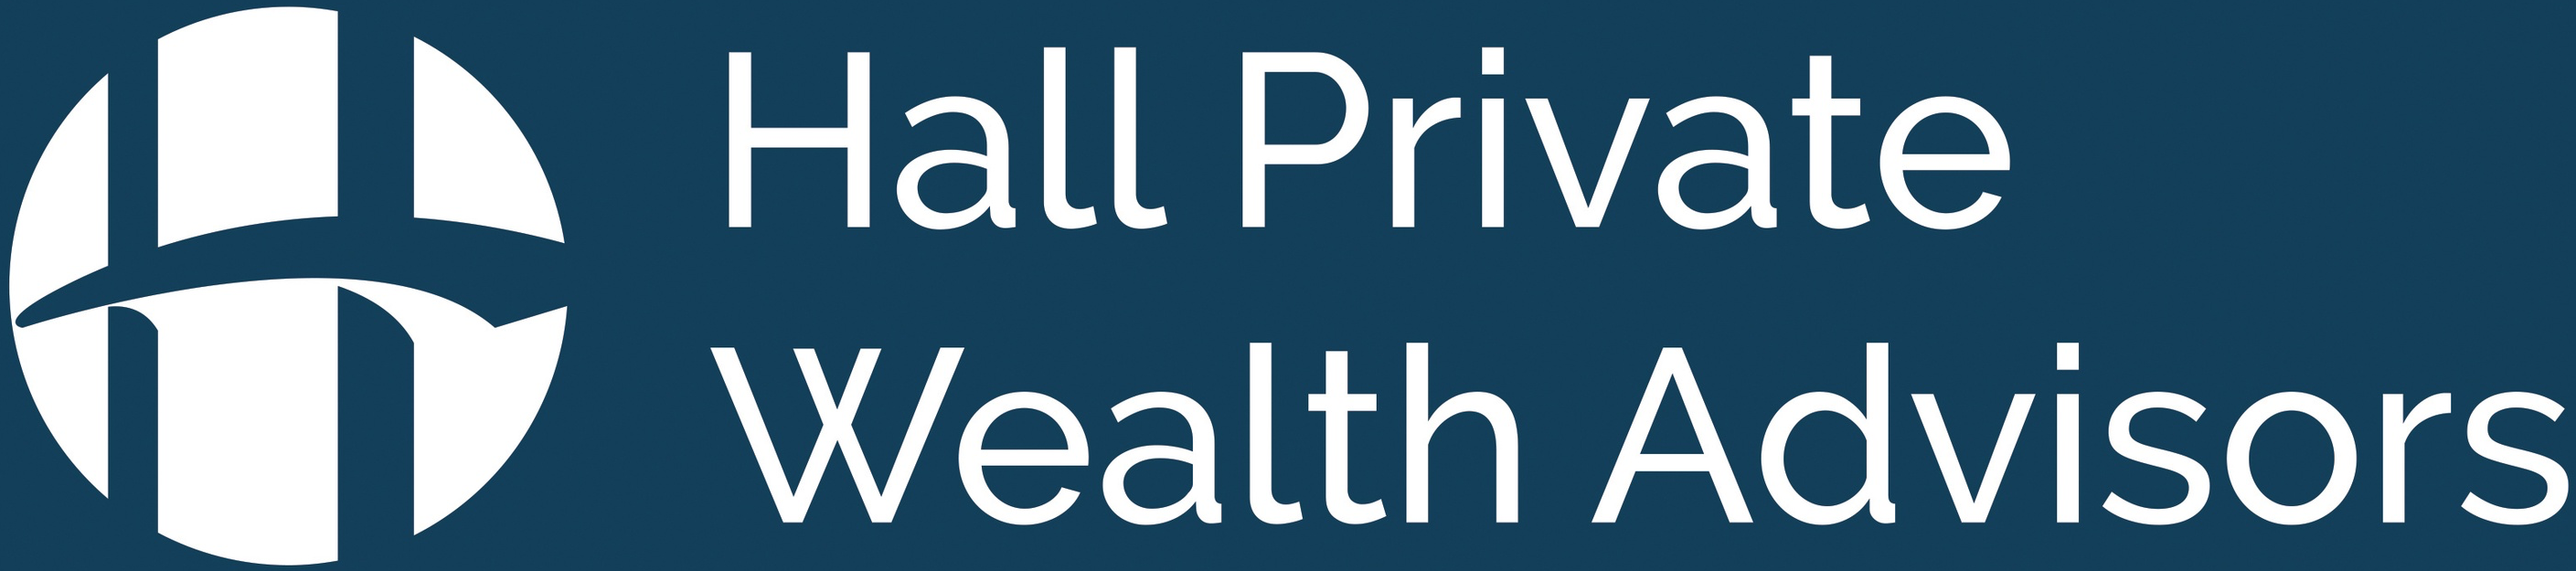 Logo for Hall Private Wealth Advisors